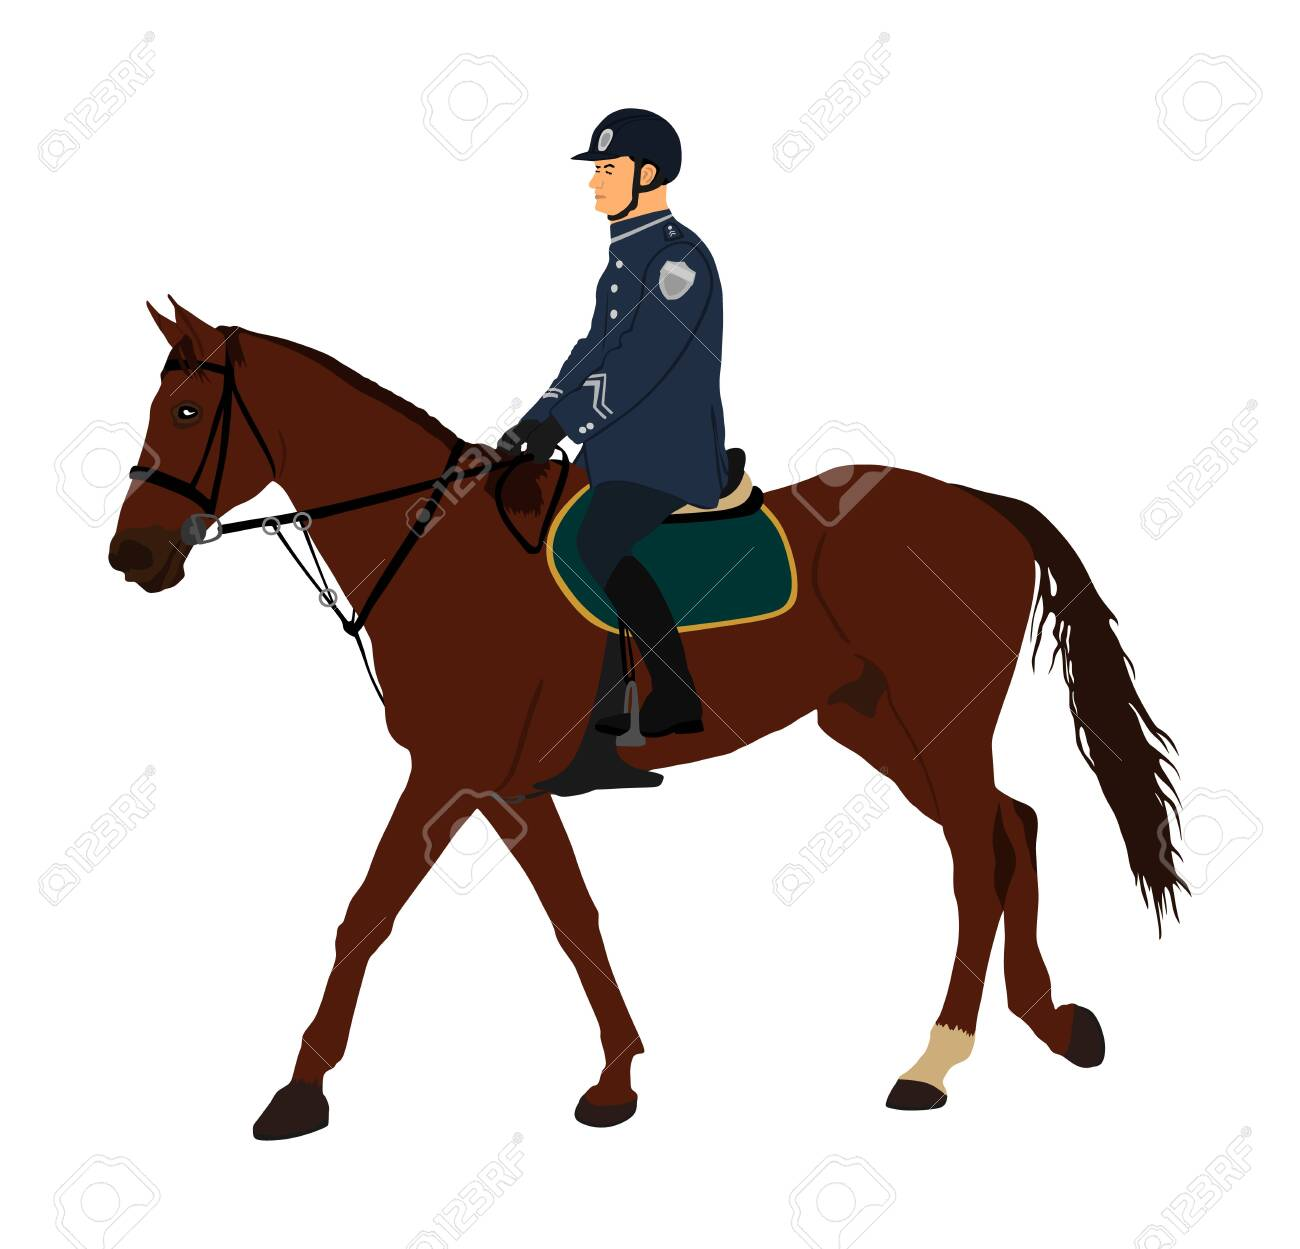 Elegant Horse With Jockey Vector Illustration Isolated On White Royalty Free Cliparts Vectors And Stock Illustration Image 129274149